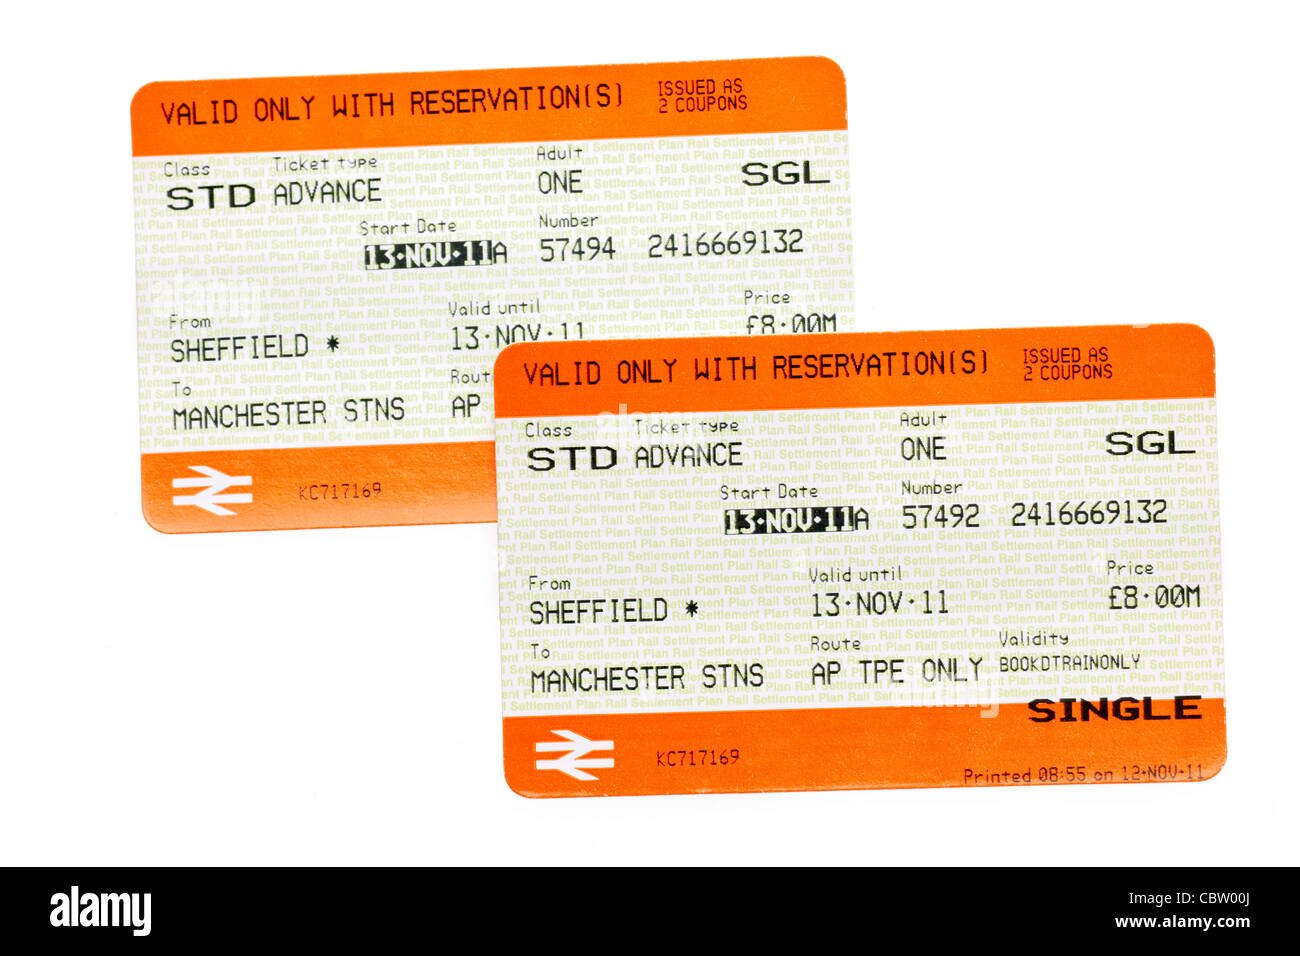 Two Sheffield to Manchester train tickets for 13th November 2011 - Stock Image